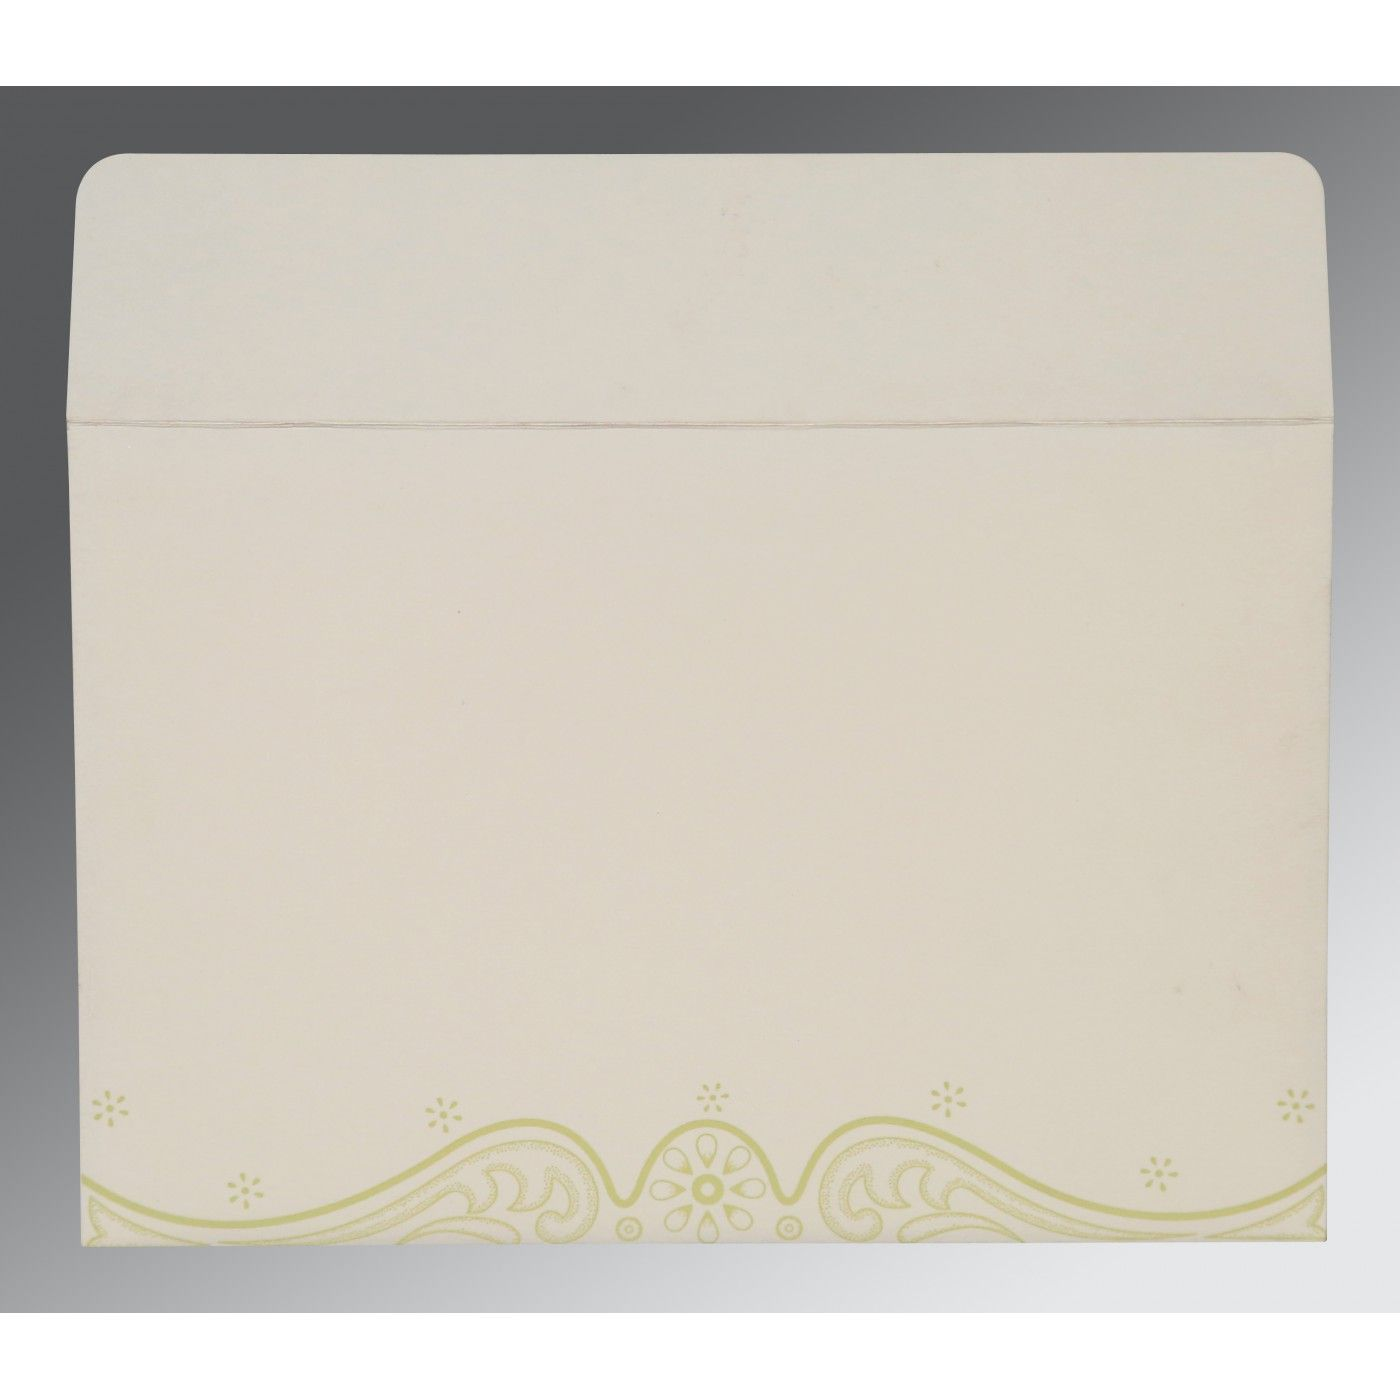 MUSTARD YELLOW MATTE EMBOSSED WEDDING INVITATION : CSO-8221K - IndianWeddingCards